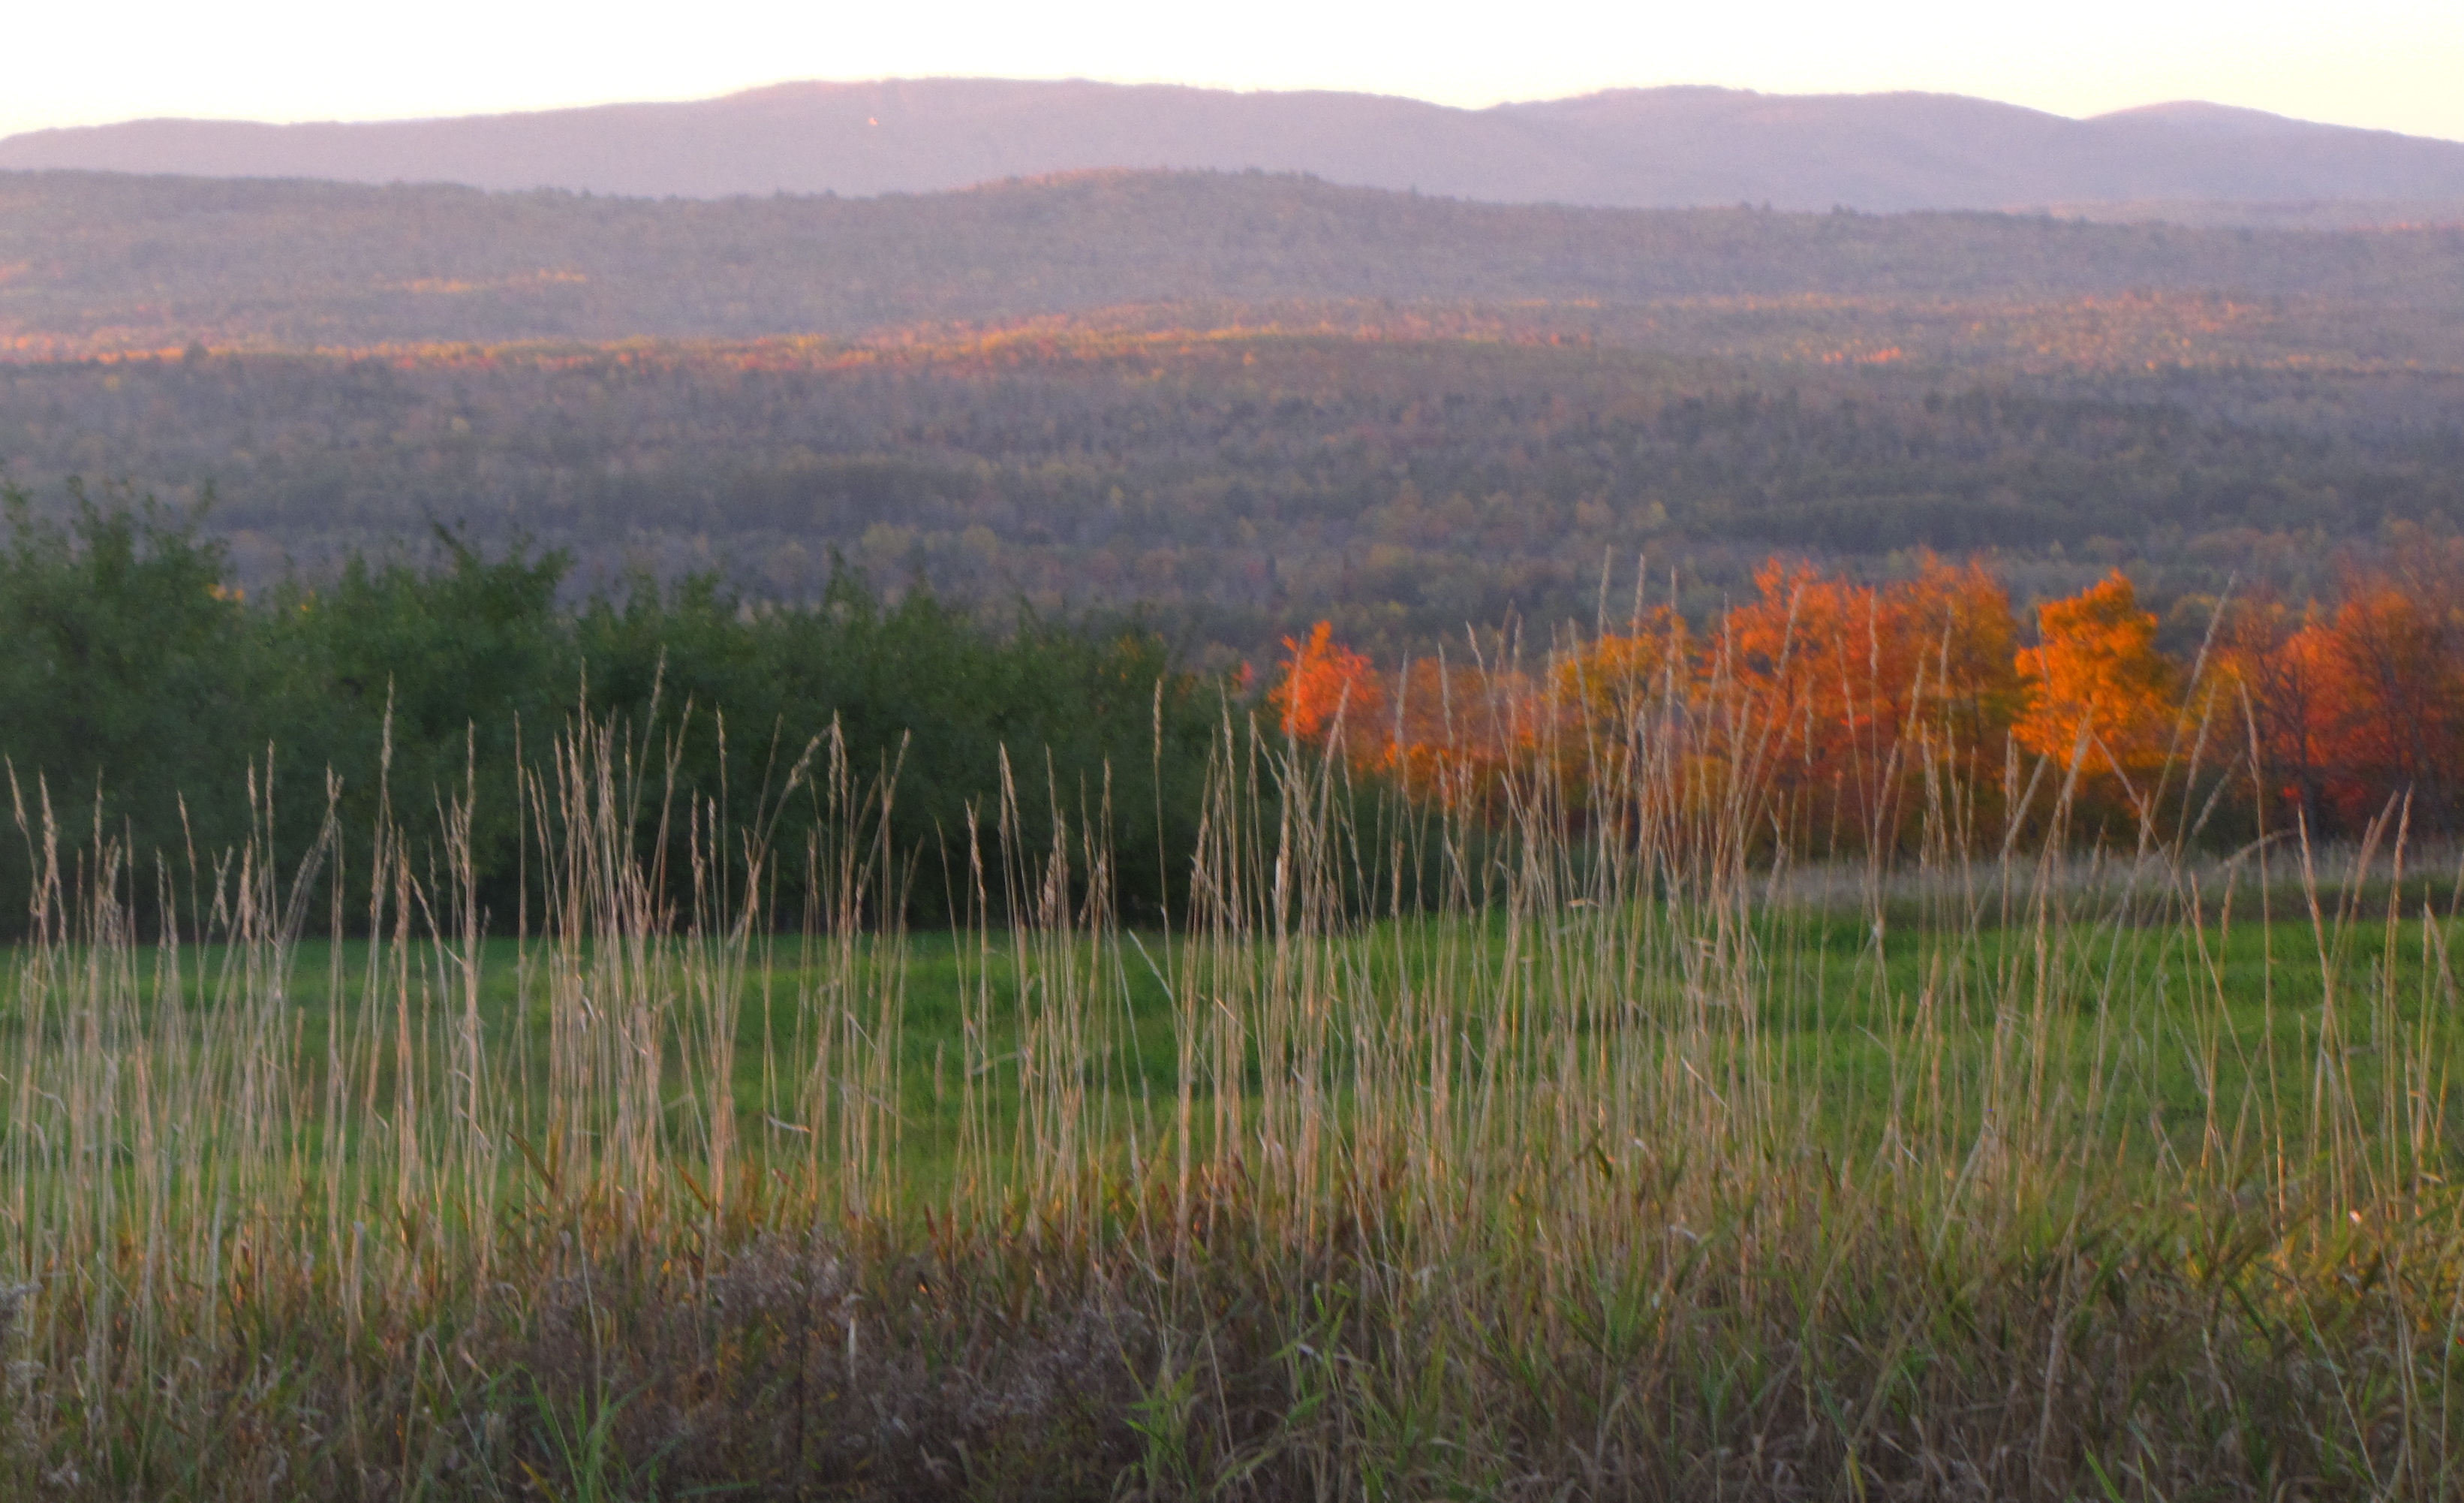 The view from North Star Orchards, Madison, Maine, in mid-October. Like many New England orchards, North Star's farm store will remain open until Christmas. (Russell Steven Powell photo)